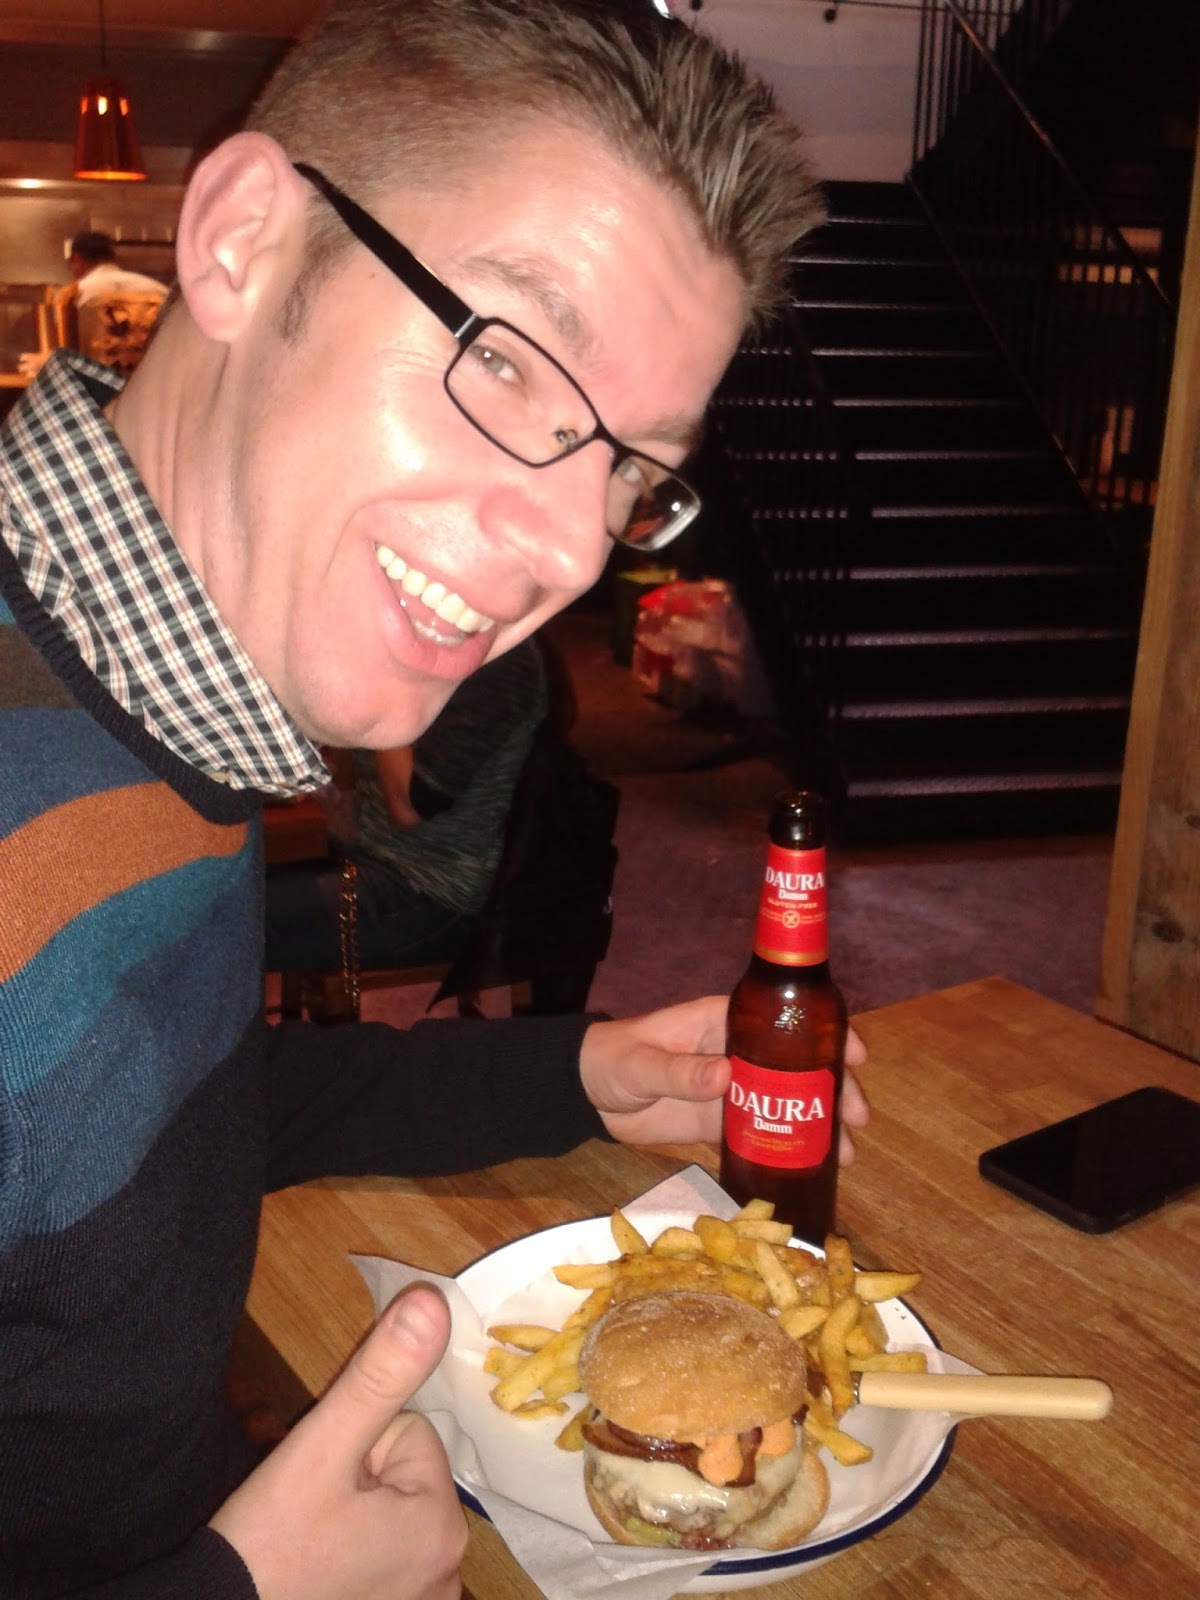 A very happy Coeliac with his gluten free burger, chips and beer at Honest Burgers